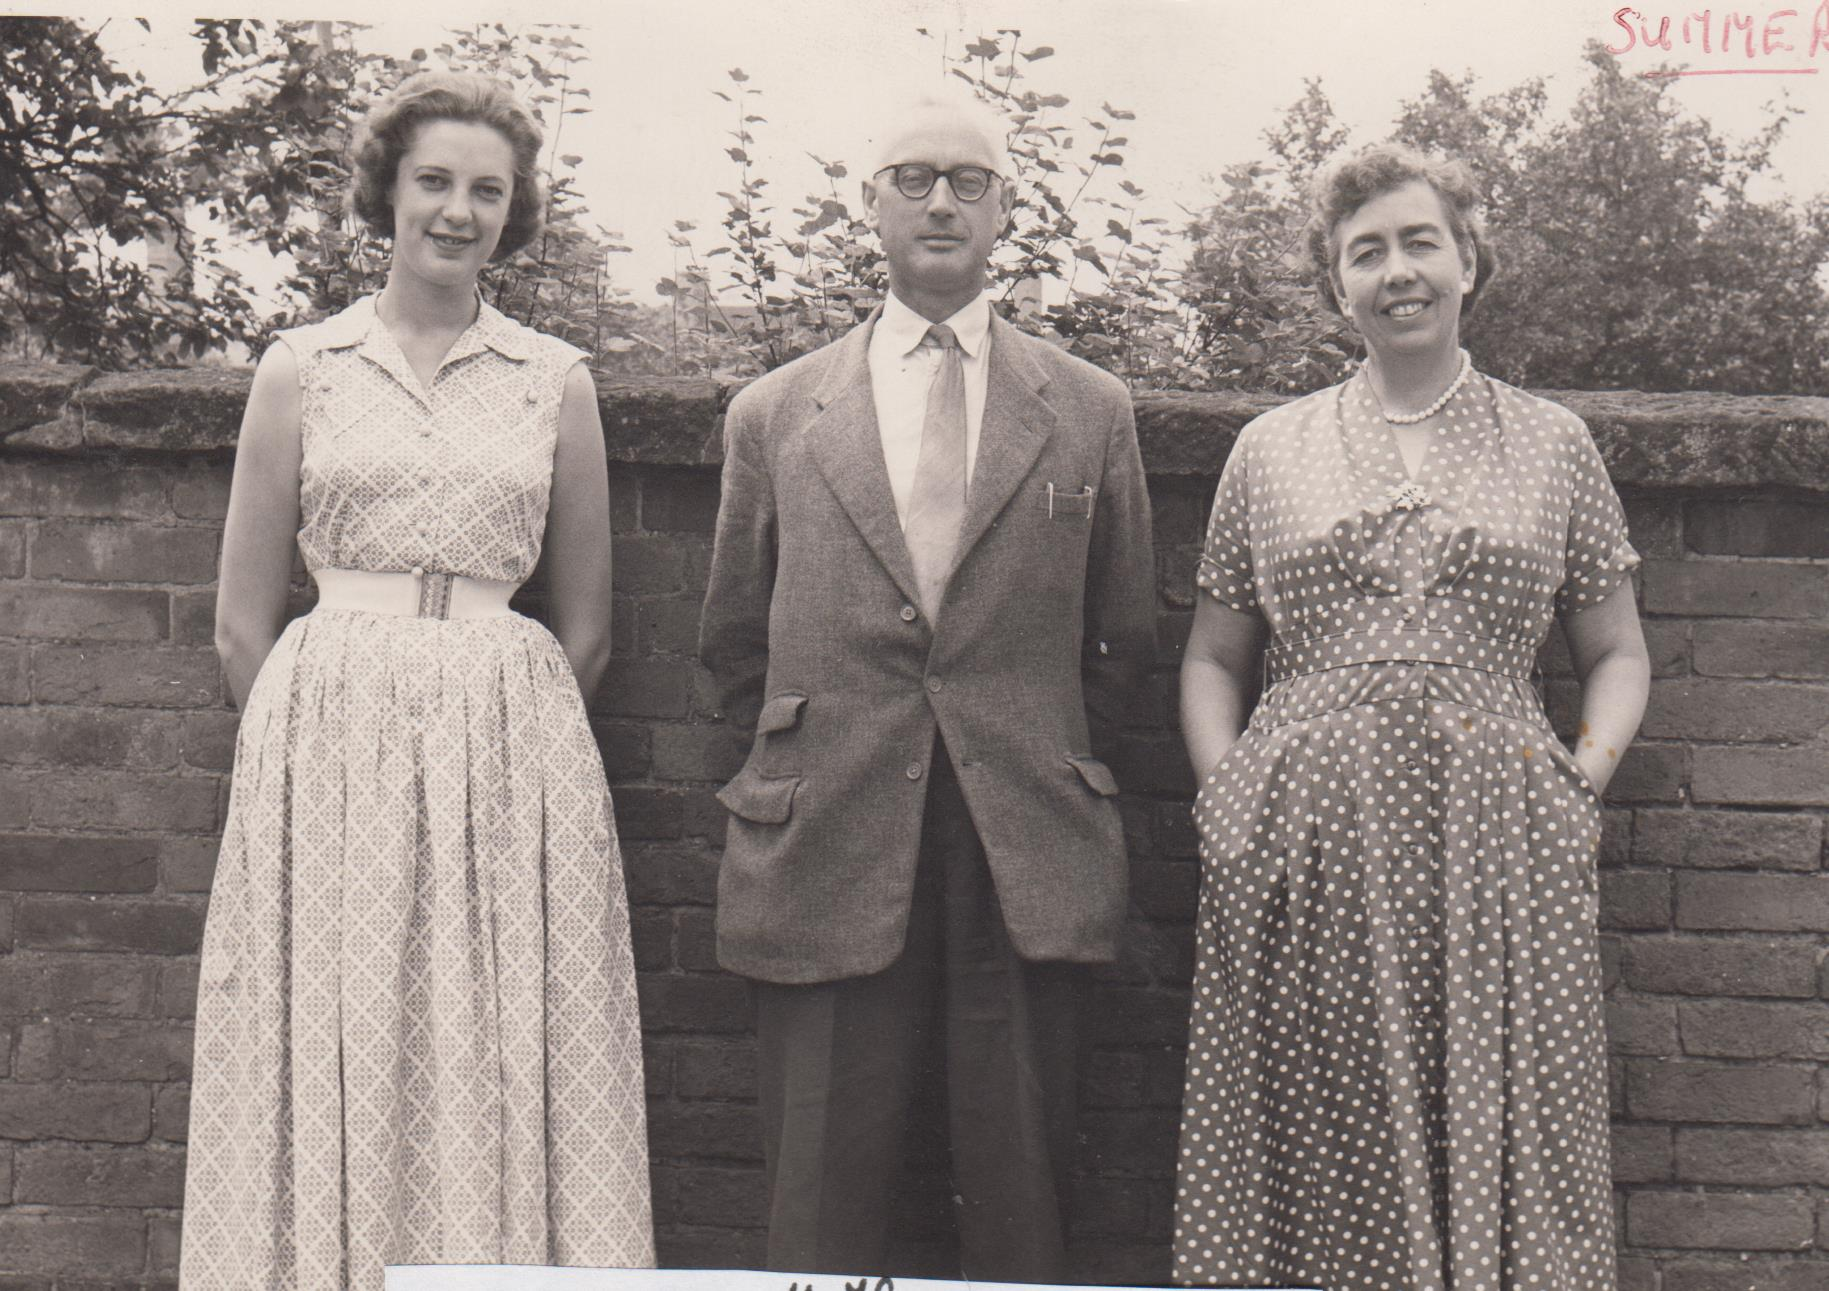 school_teachers_summer_1958_001.jpg